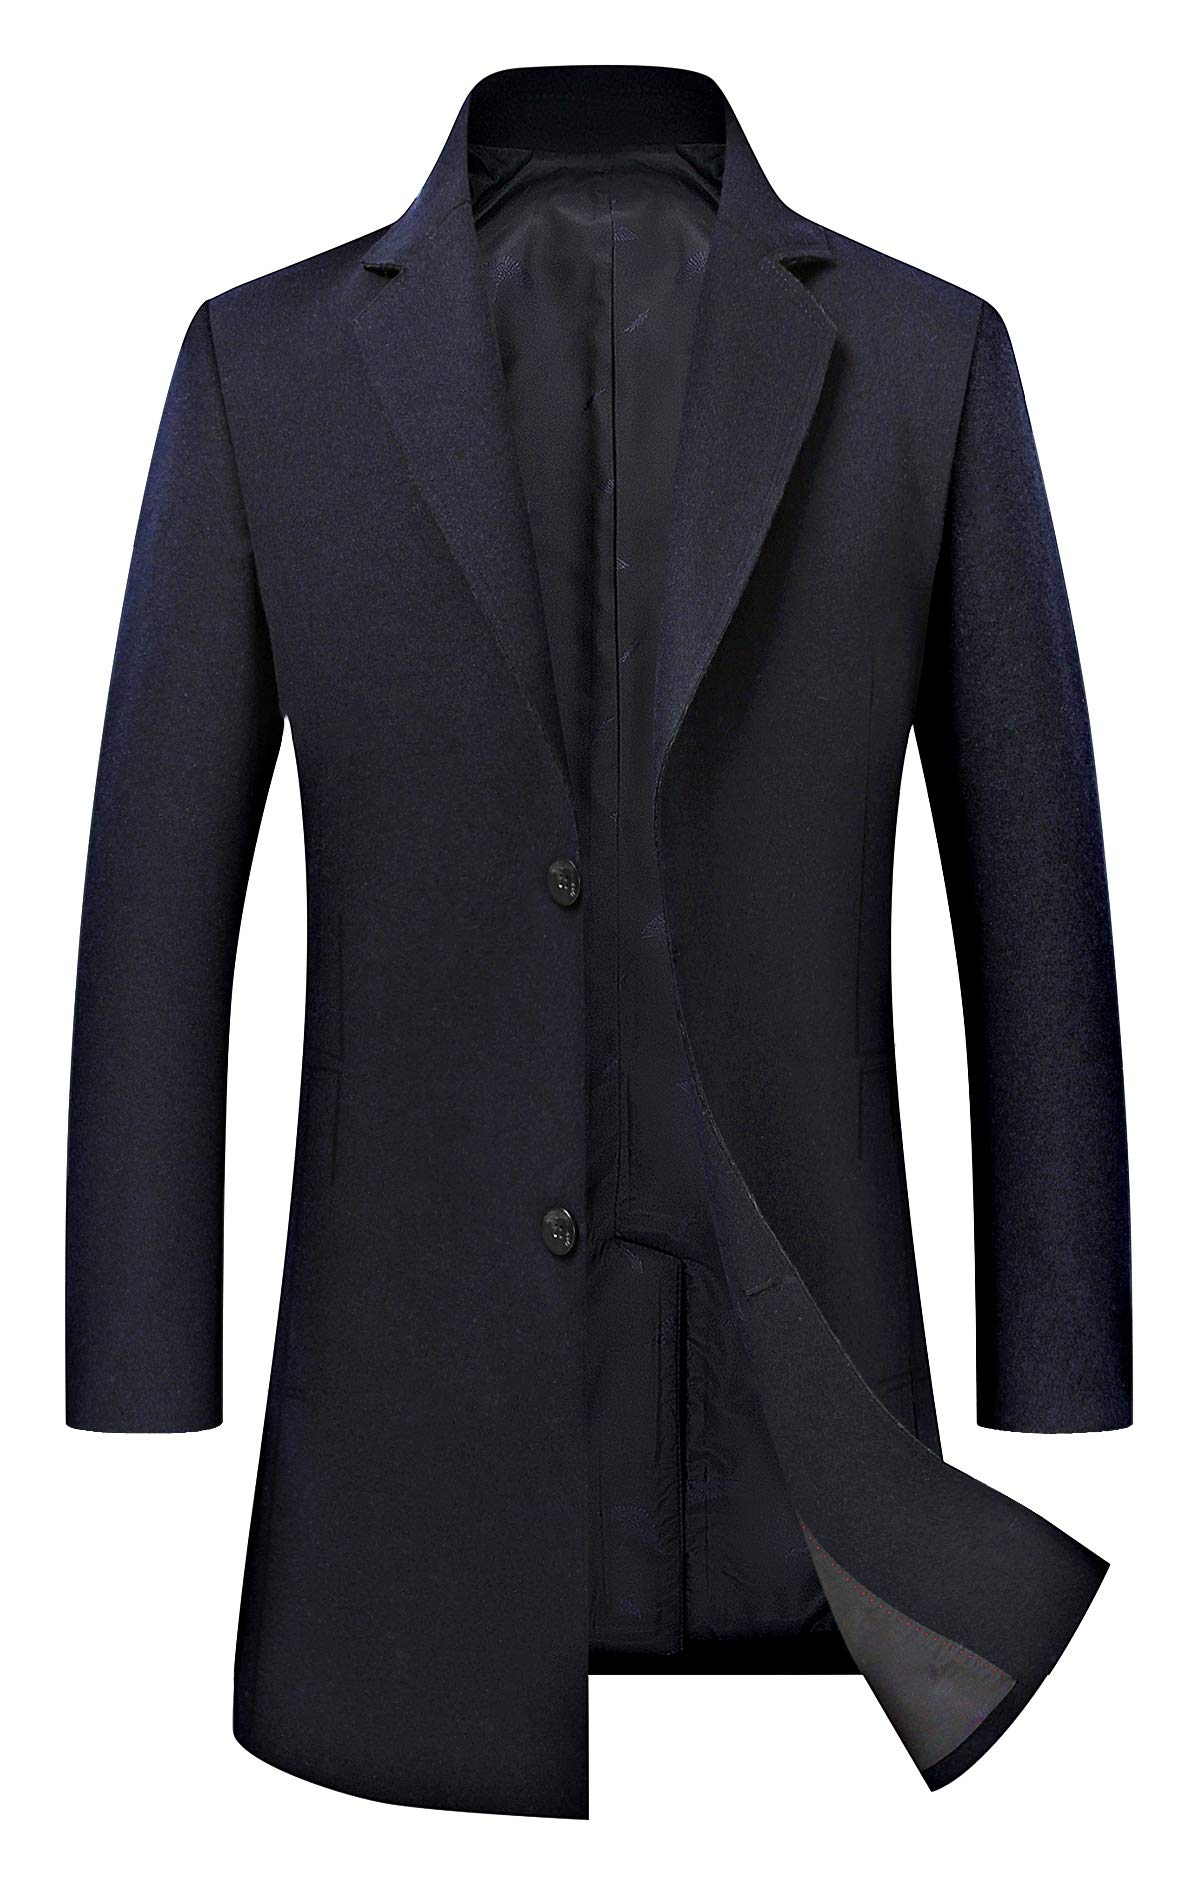 Men's Trench Coat Wool Blend Slim Fit Jacket Single Breasted Business Top Coat 18635 Navy L by ELETOP